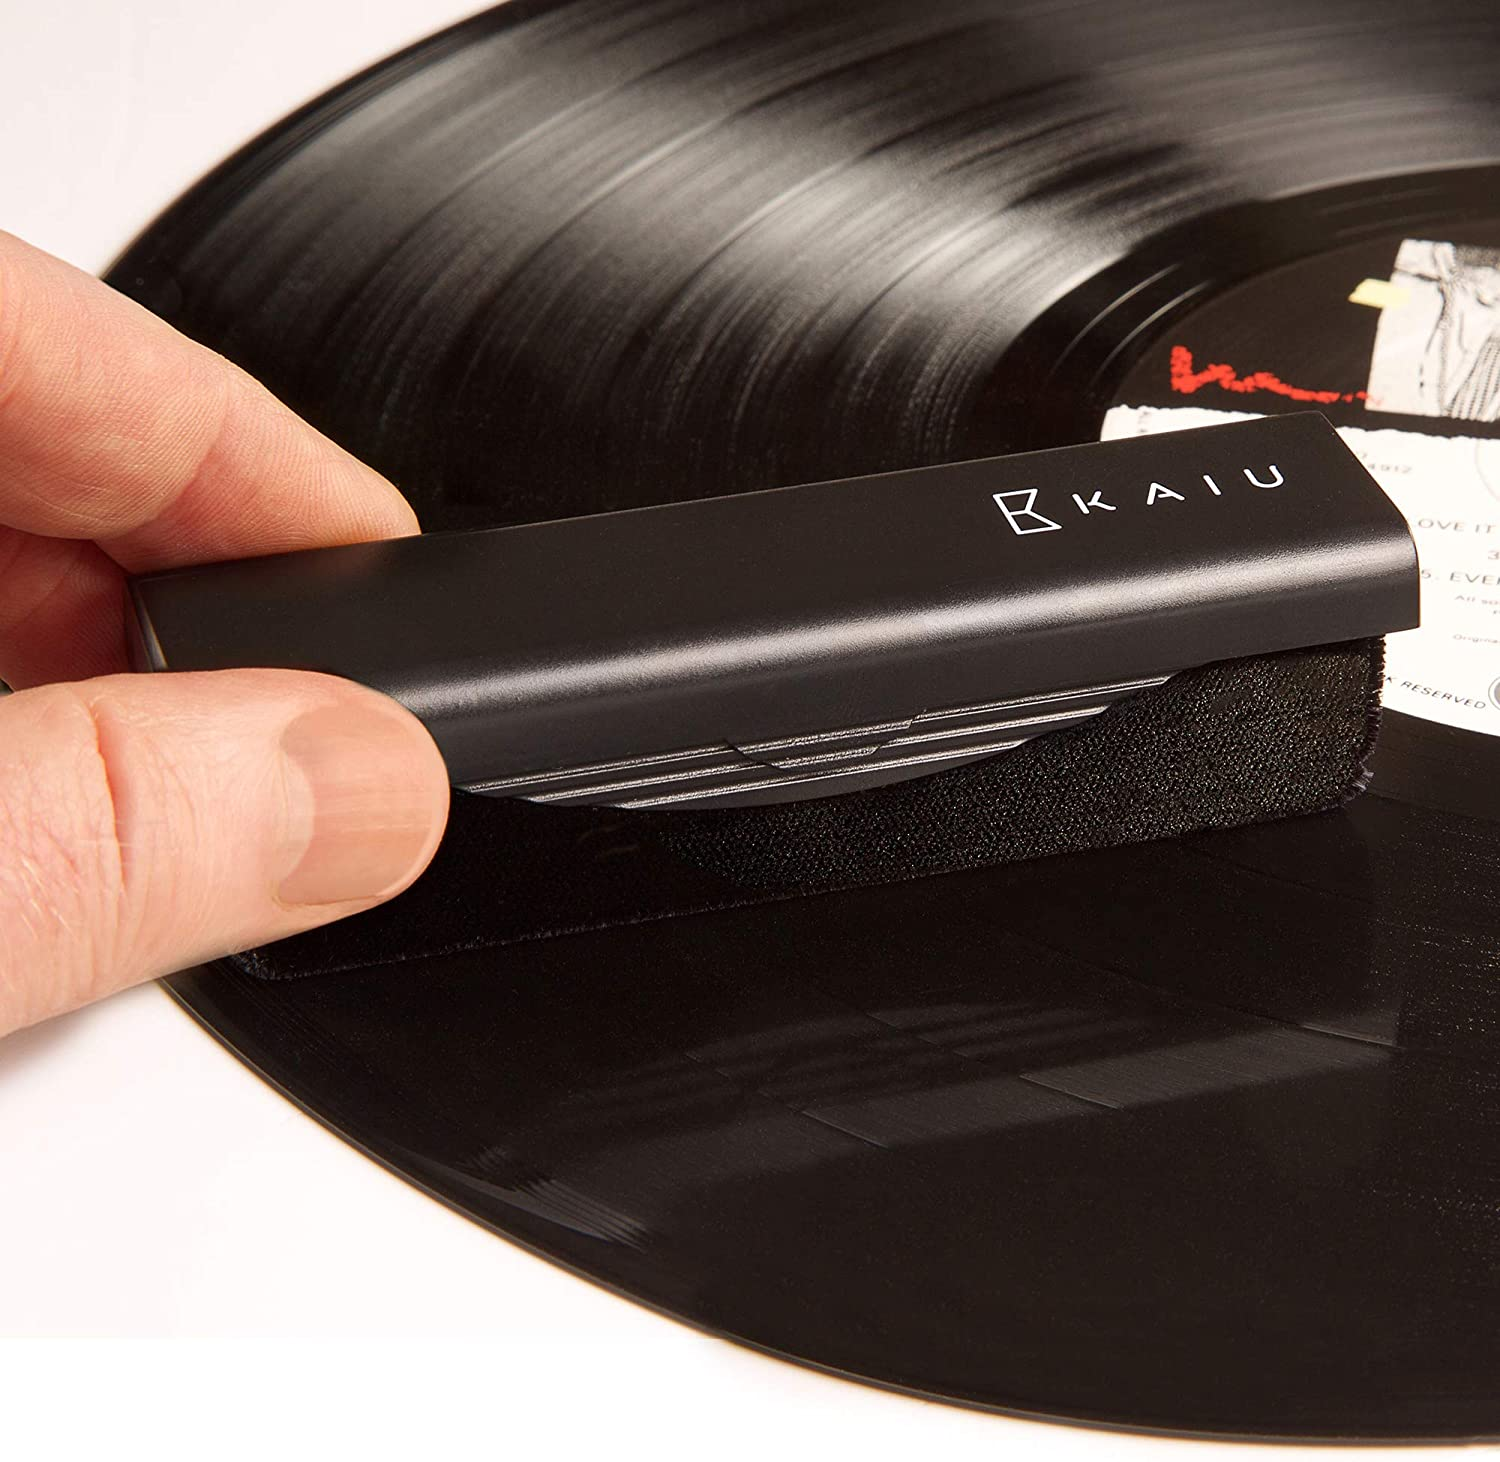 Amazon.com: Vinyl Record Cleaning Kit by KAIU - 5-in-1 ...